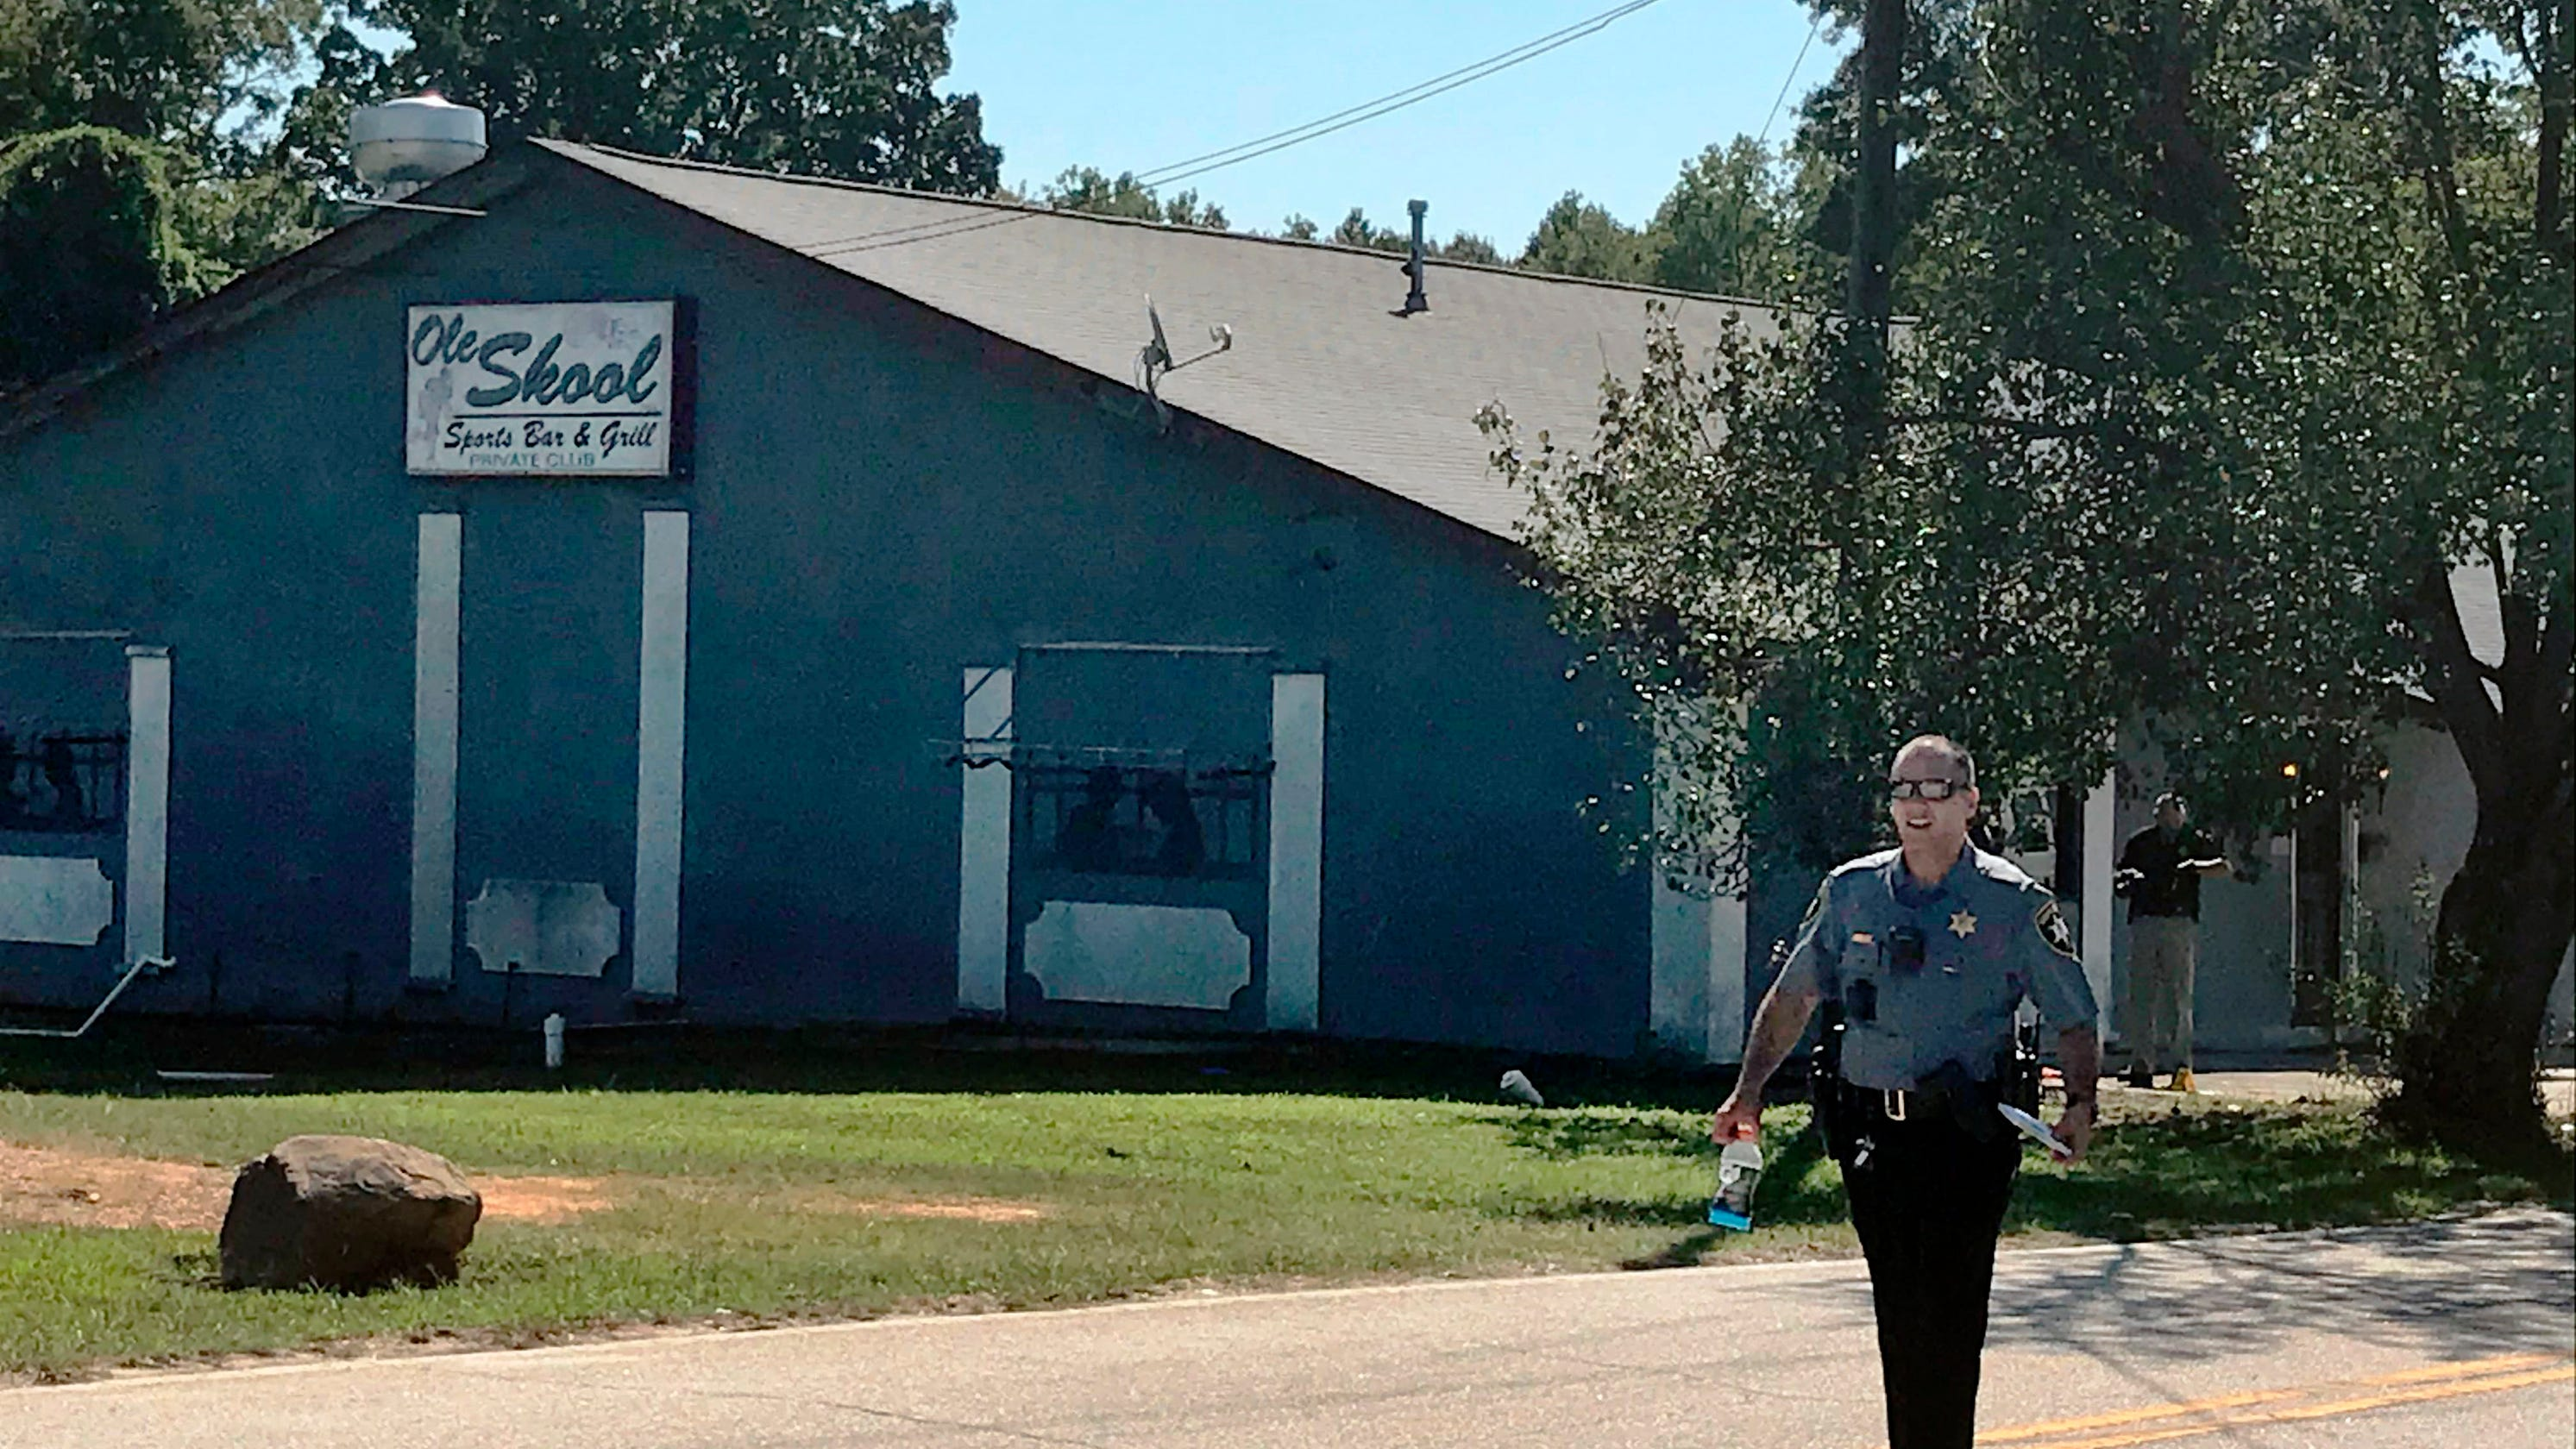 Police suspect longstanding 'beef' led to deadly shooting at South Carolina bar